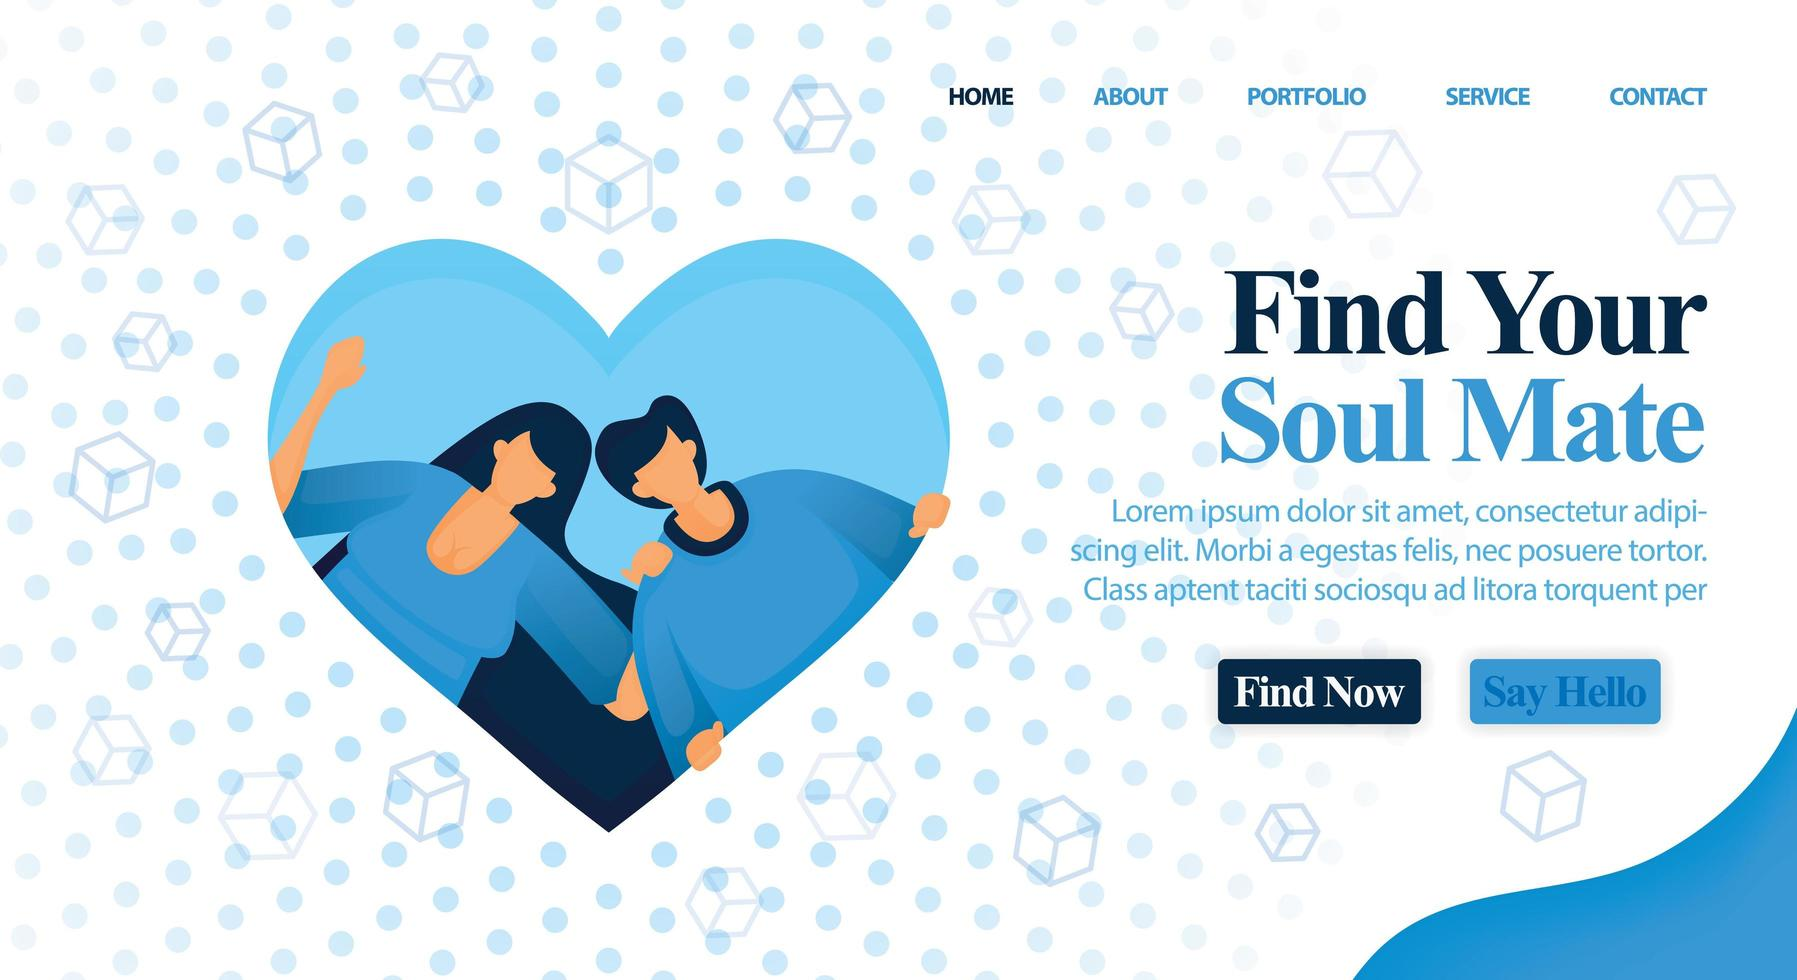 Website for matchmaker, friend and plan your wedding. Find your soul mate and perfect partner here for your wedding and engagement. Vector Illustration For Web, Landing Page, Banner, Mobile Apps, Card